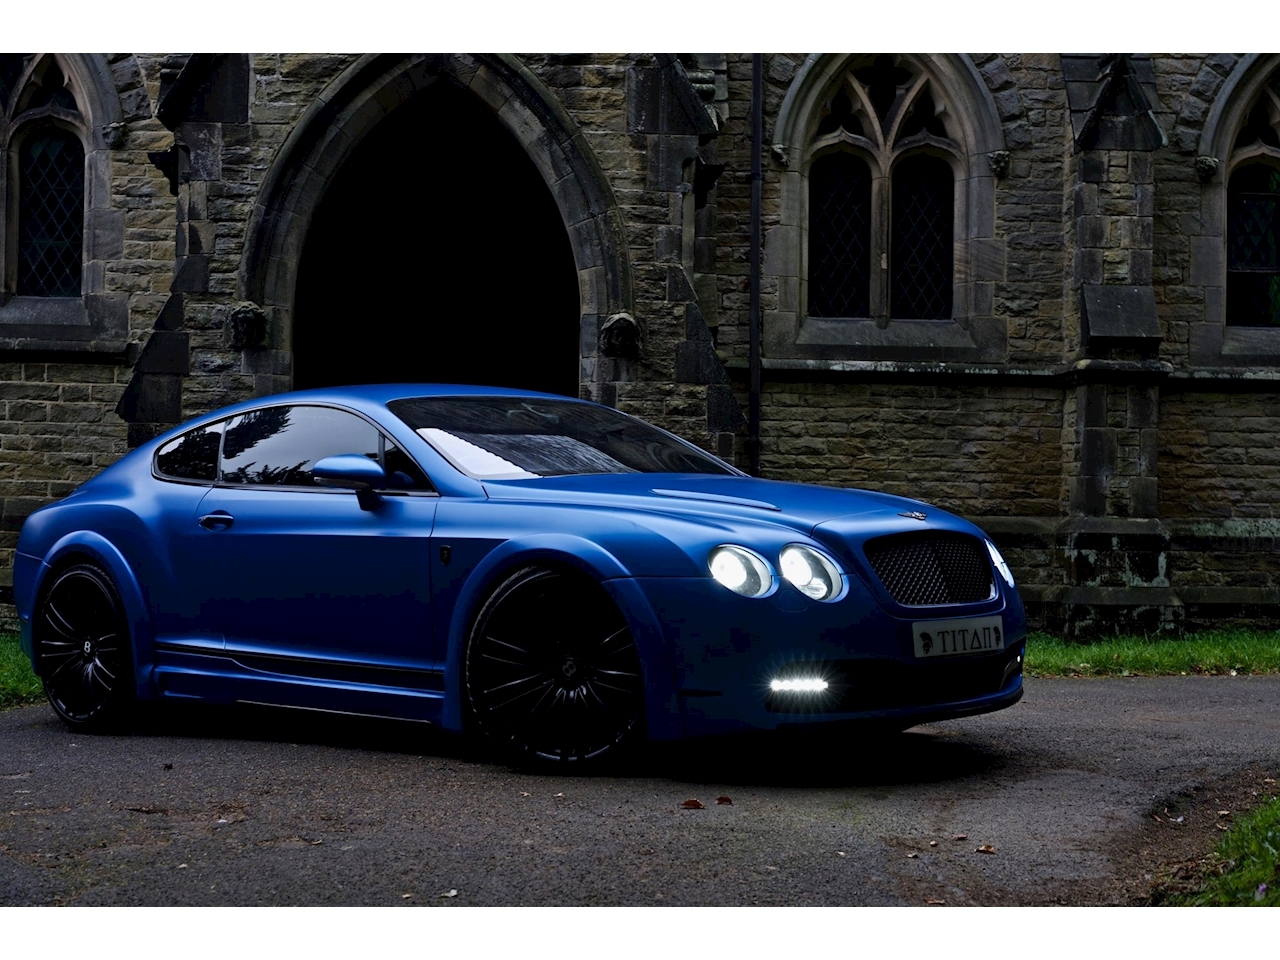 Continental Gt Coupe 6.0 Automatic Petrol